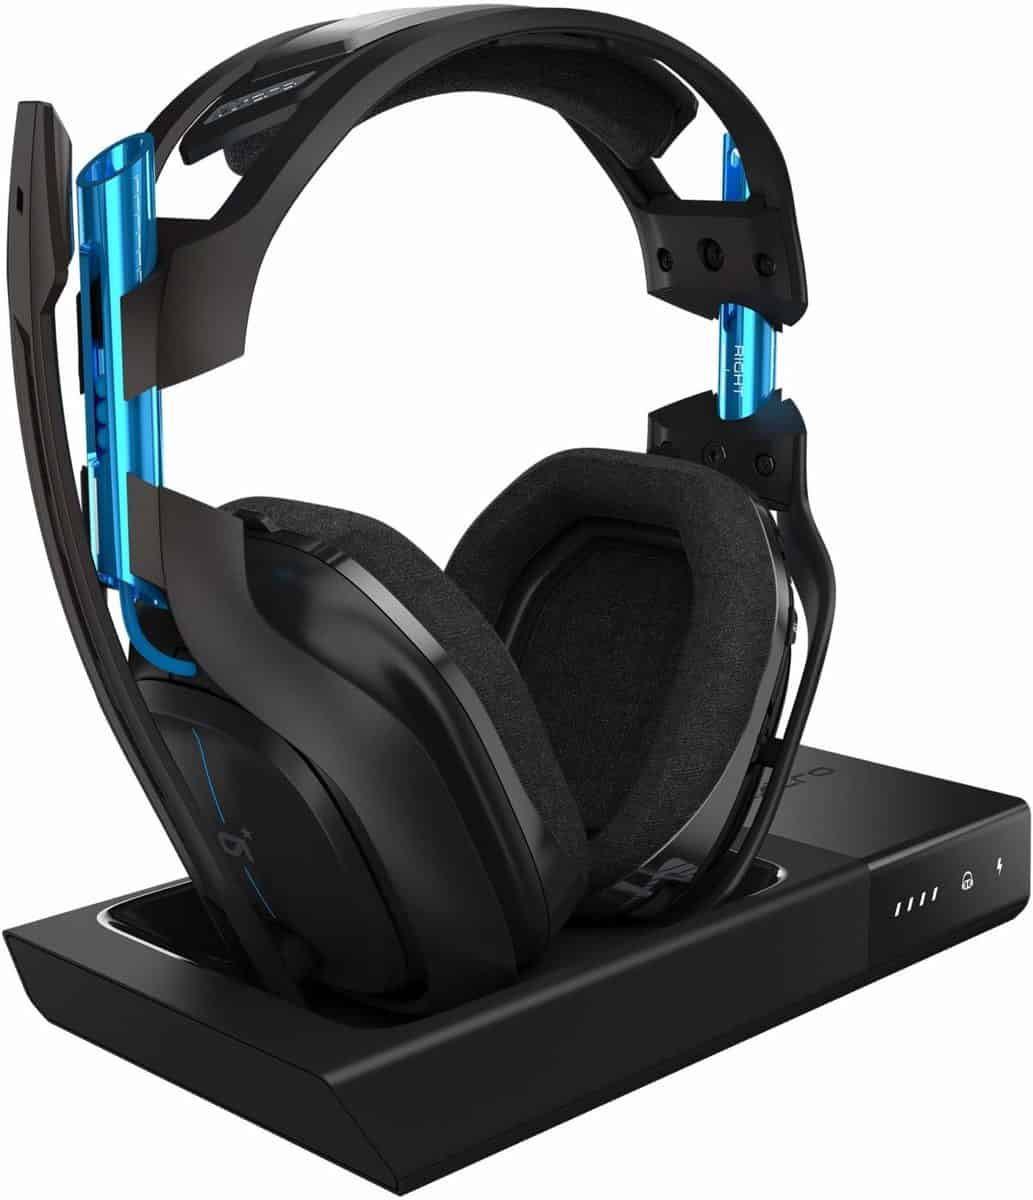 Best Gaming Headphones 2020.The Best Gaming Headsets In 2019 Wepc Com